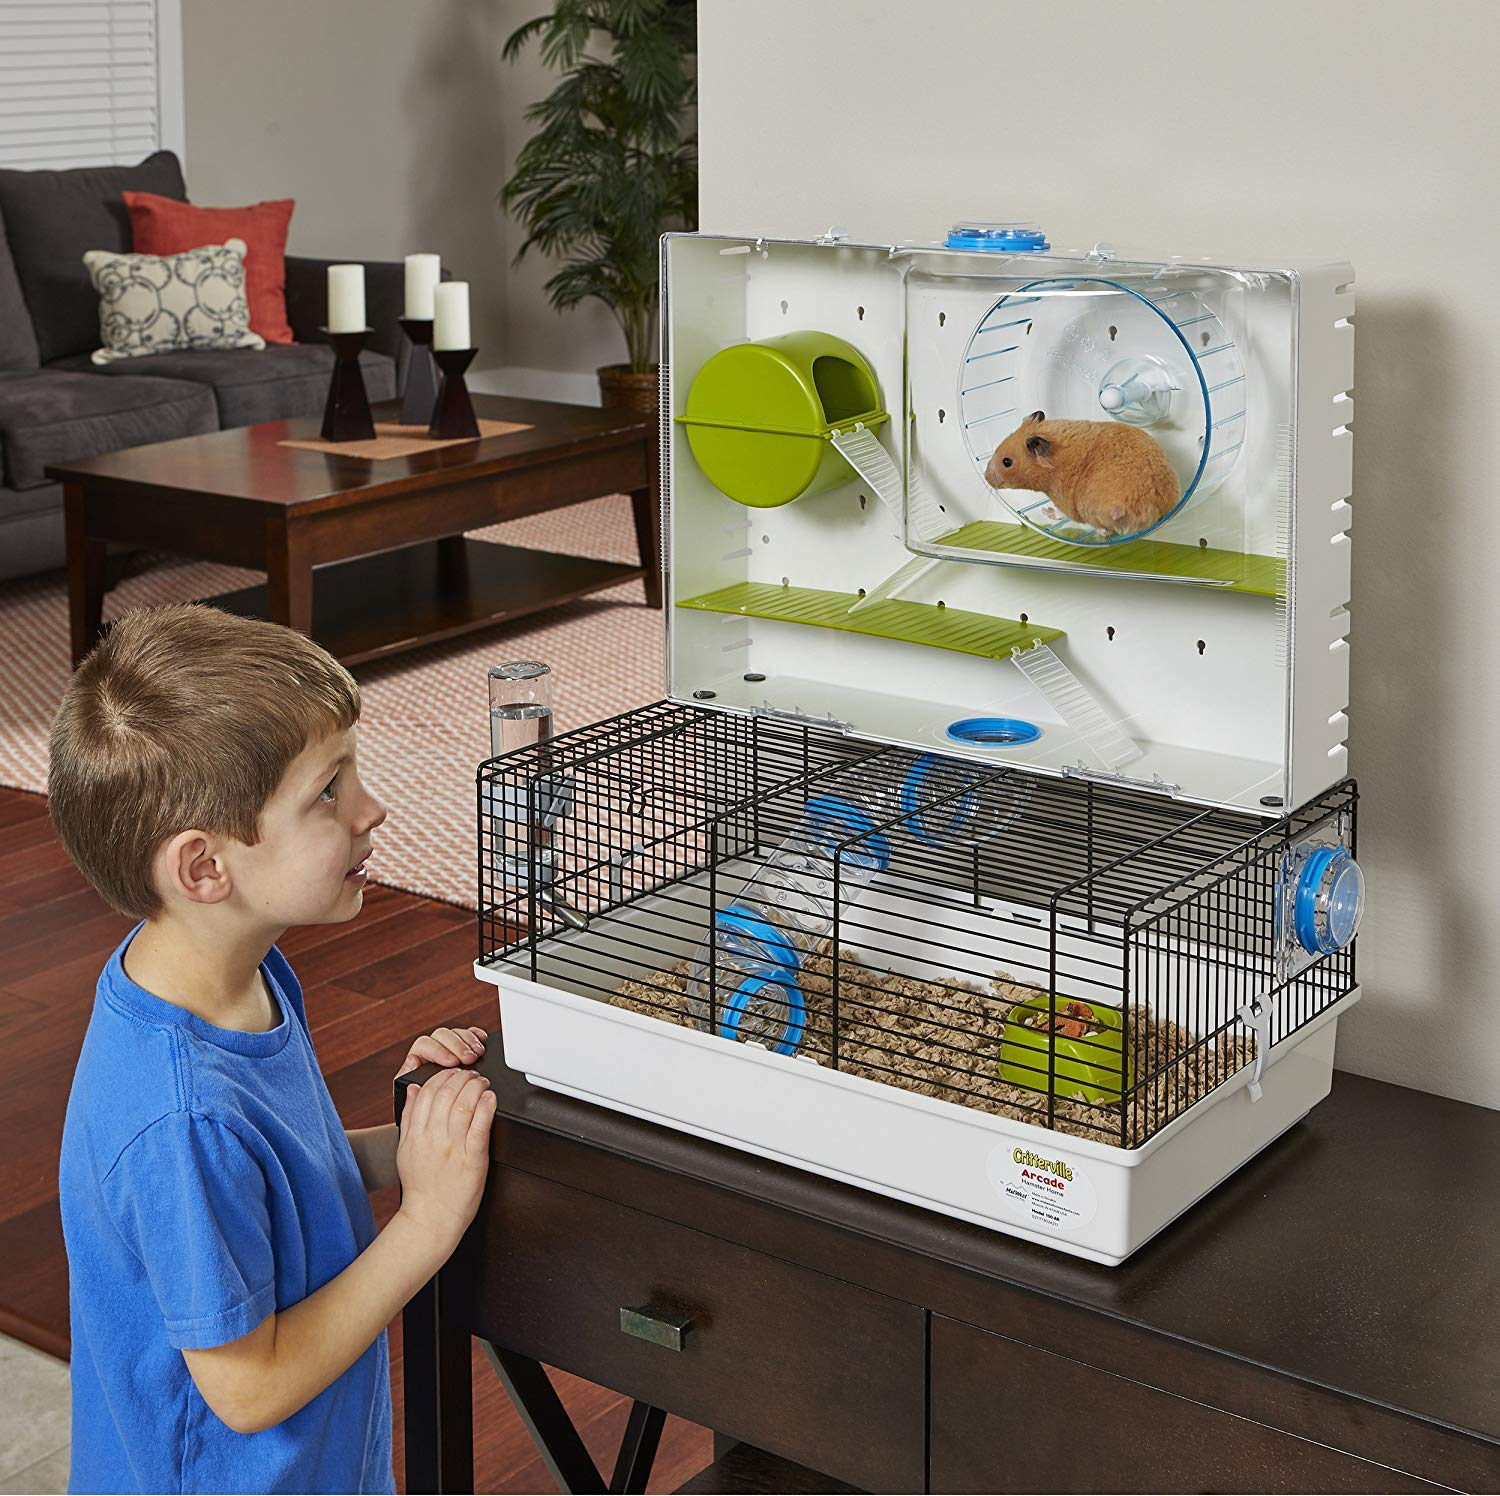 MidWest Homes for Pets Hamster Cage | Awesome Arcade Hamster Home | 18.11'' x 11.61'' x 21.26'' by MidWest Homes for Pets (Image #7)